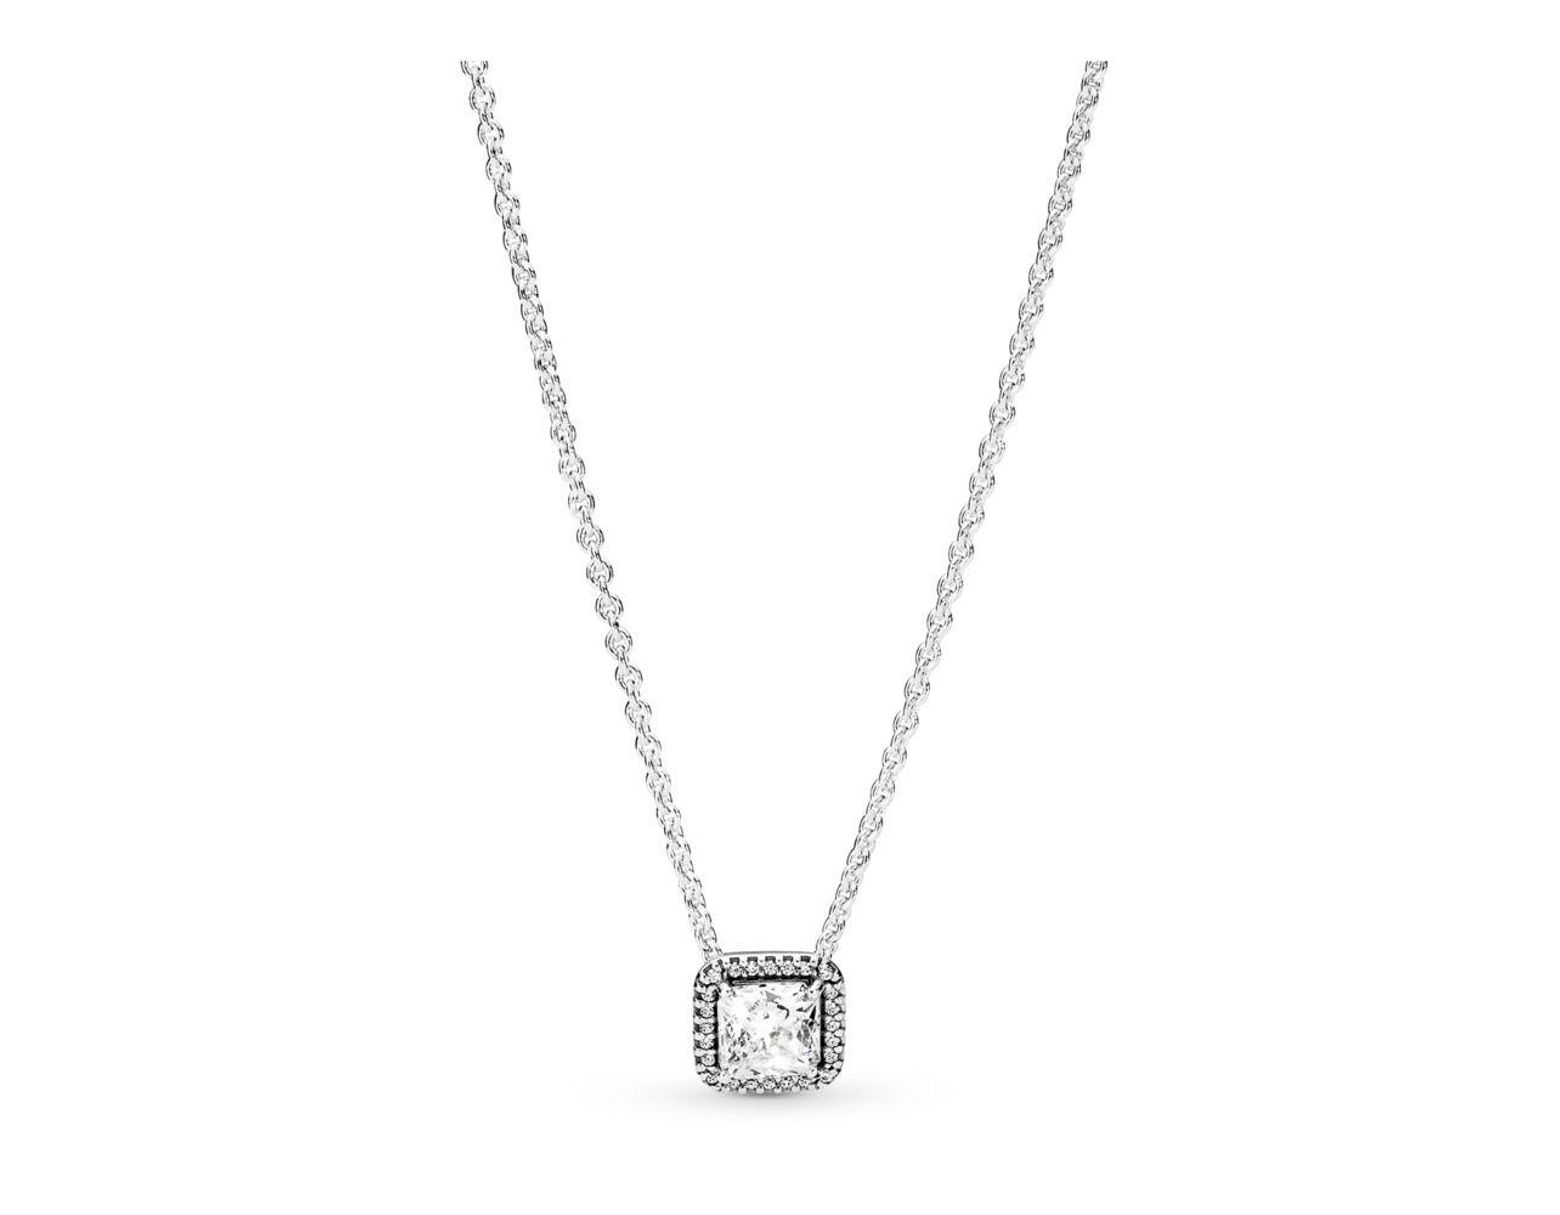 1d9450e3c PANDORA Timeless Elegance Necklace in Metallic - Lyst